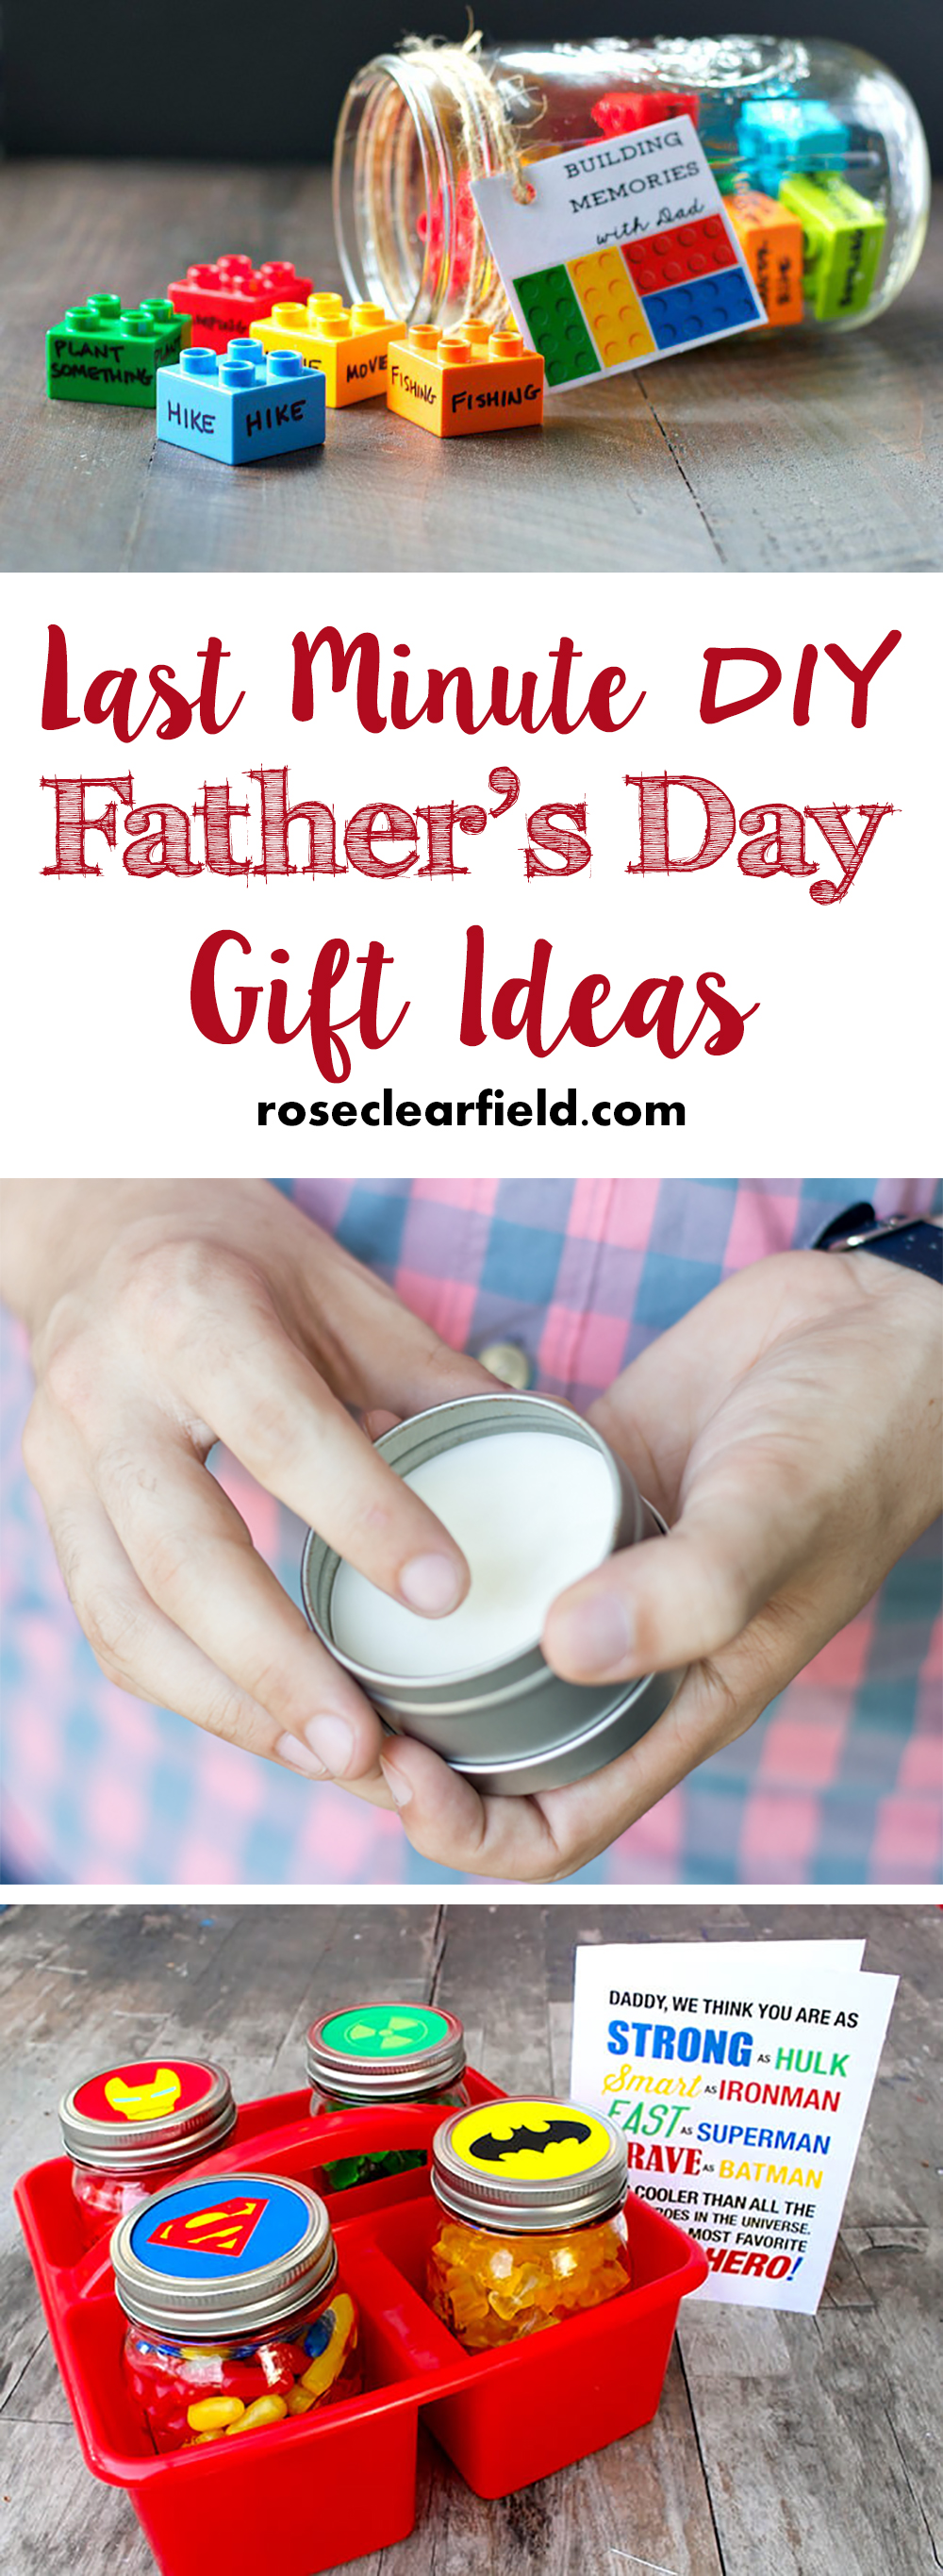 20+ Homemade Father's Day Gifts that kids can make! These easy Father's Day Kids Crafts are so simple that ANYONE can make them – great DIY Father's Day Gift Ideas!. Father's Day is just around the corner, and there's nothing more special than homemade Father's Day gifts!